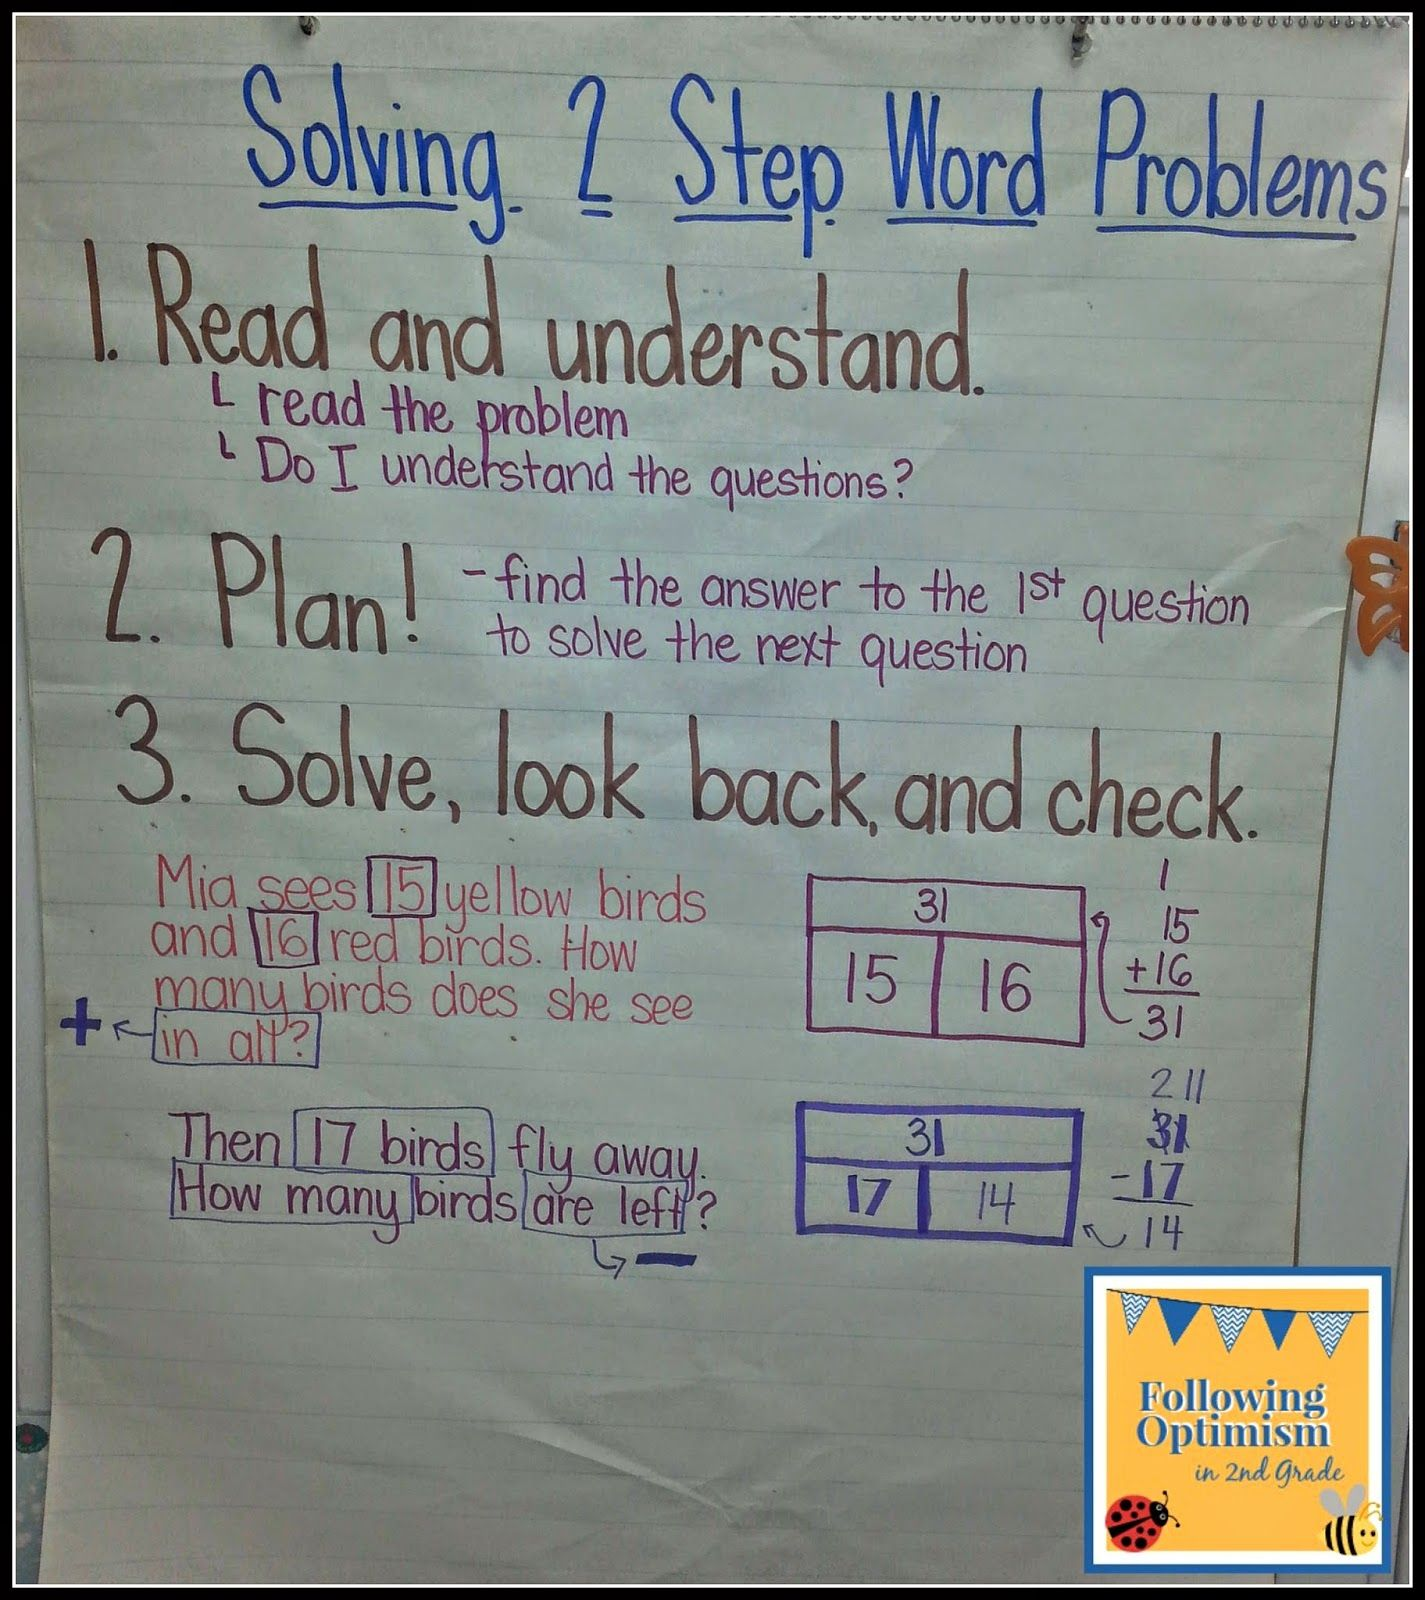 Following optimism in 2nd grade two step word problems math two step word problems anchor chart ccuart Gallery